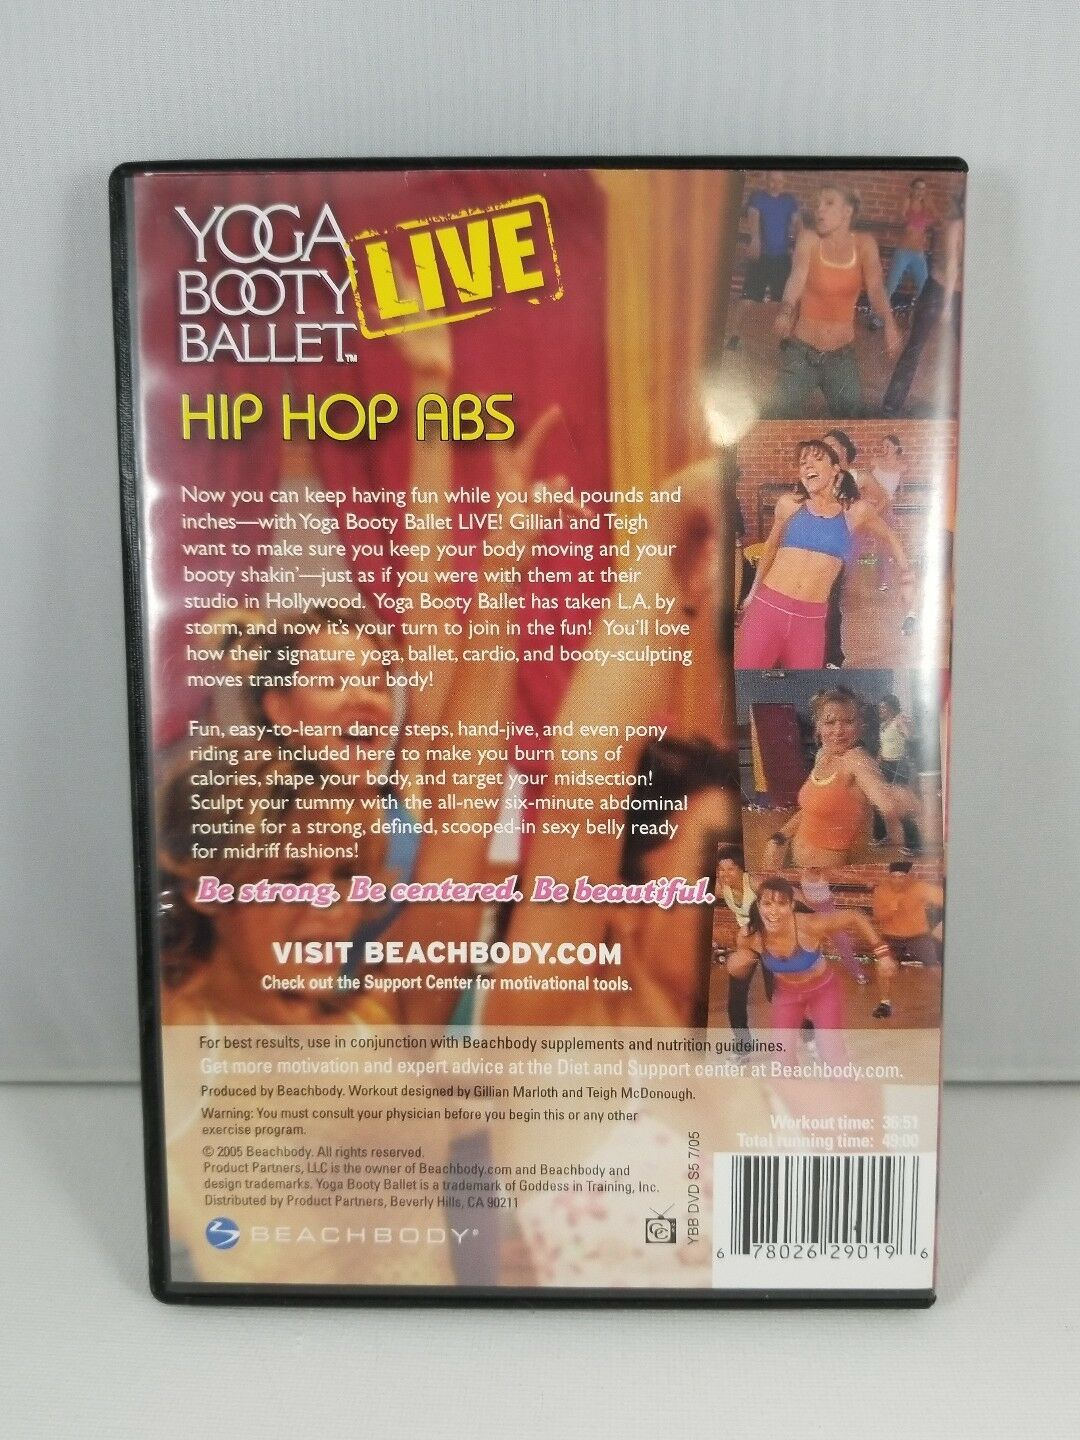 Yoga Booty Ballet Live Hip Hop Abs DVD - Fast Free Shipping! image 2